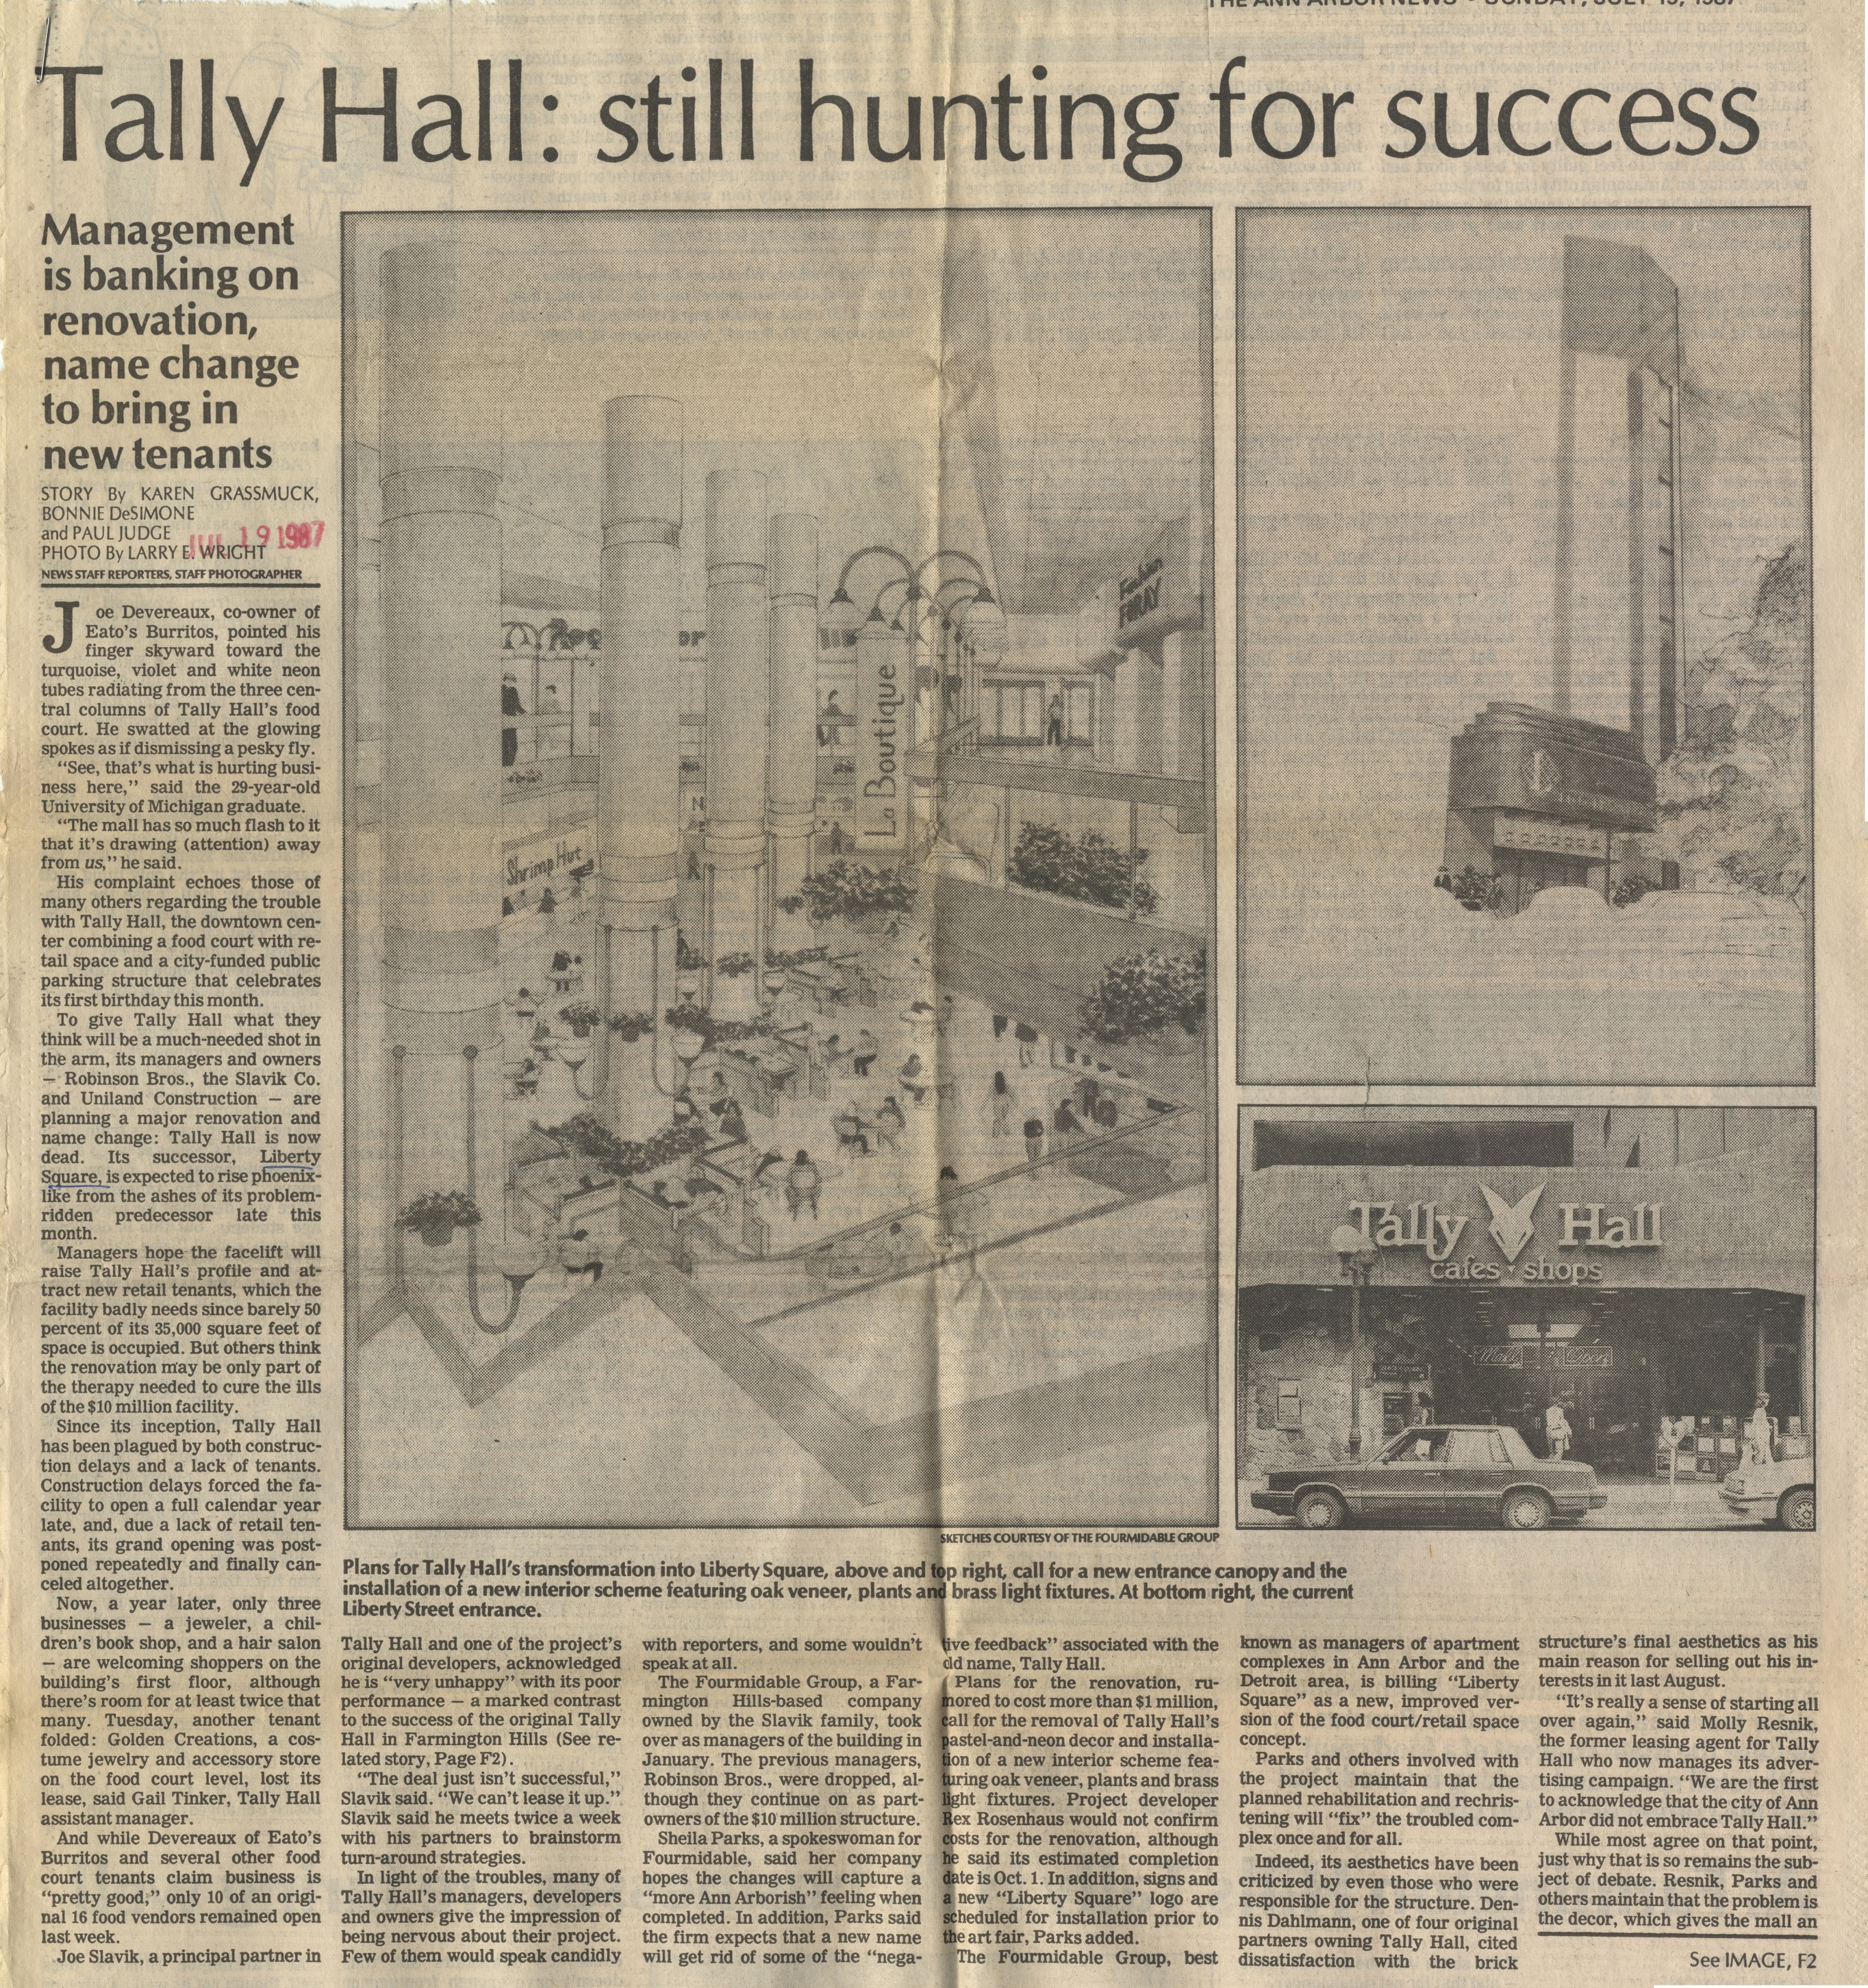 Tally Hall: Still Hunting For Success image